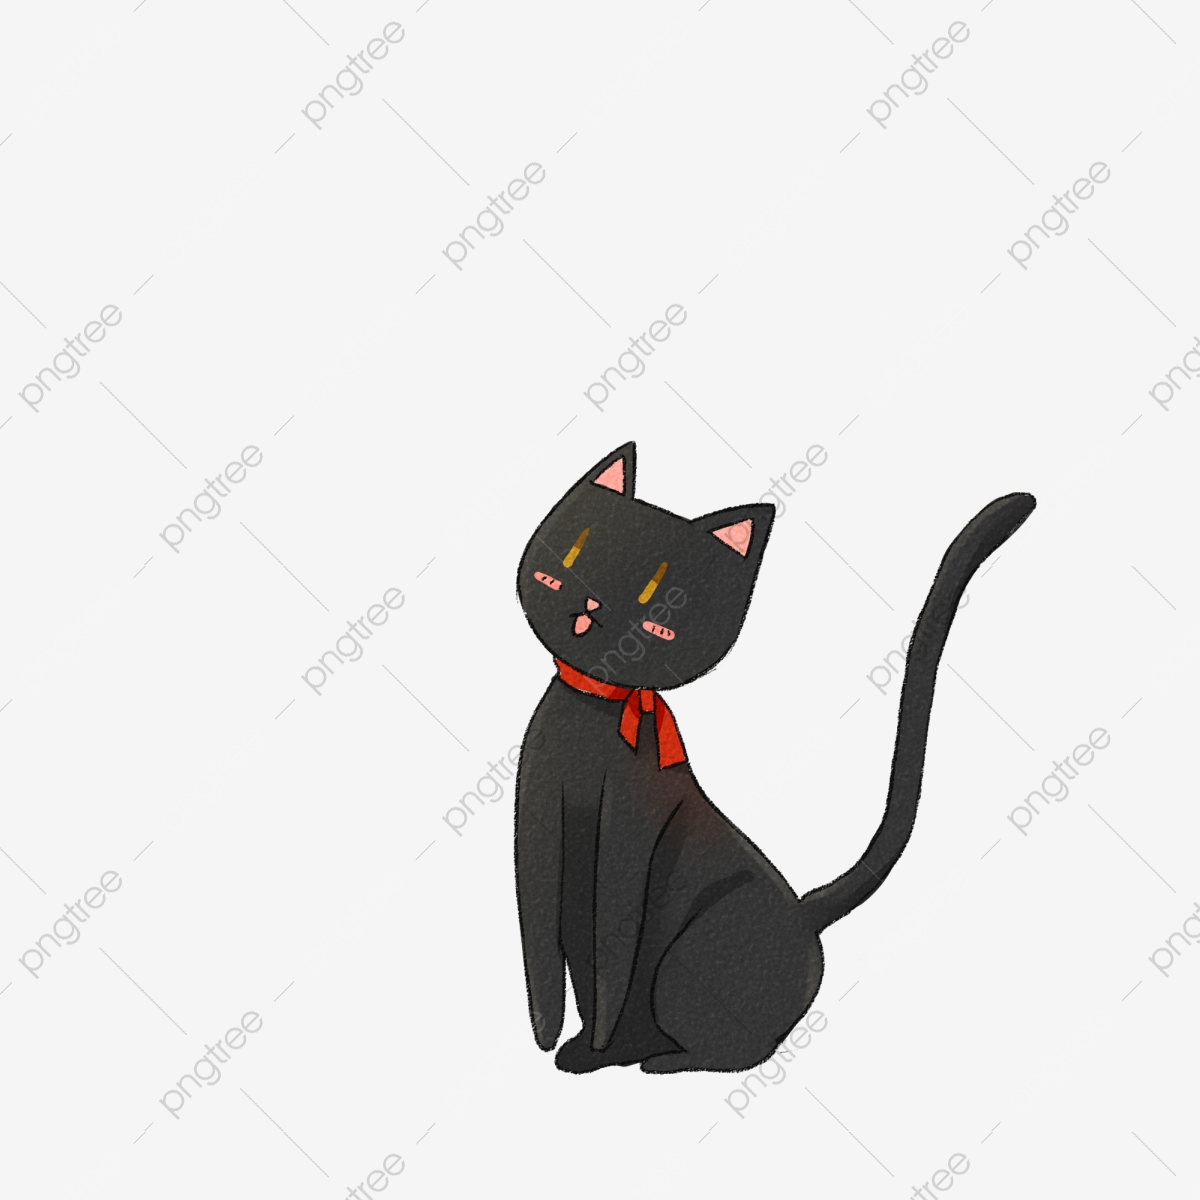 black kitten cute elements black kitten pet png transparent clipart image and psd file for free download pngtree